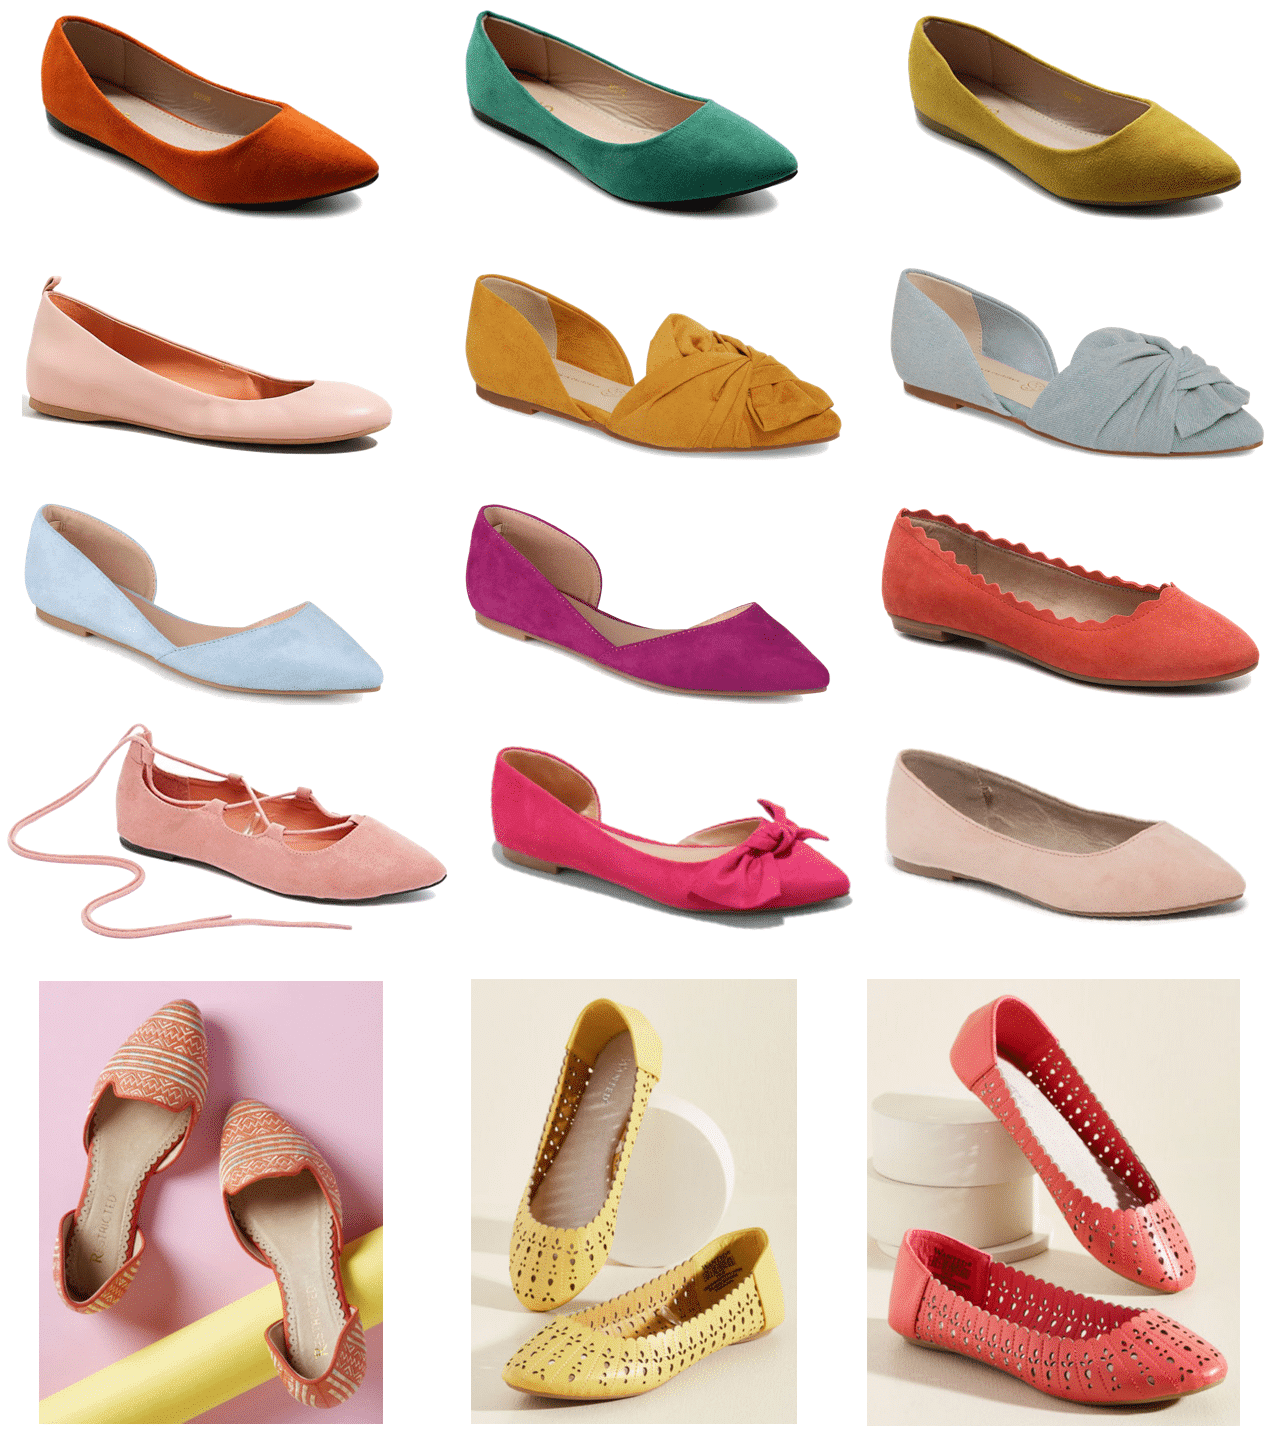 Colored Flats for Spring